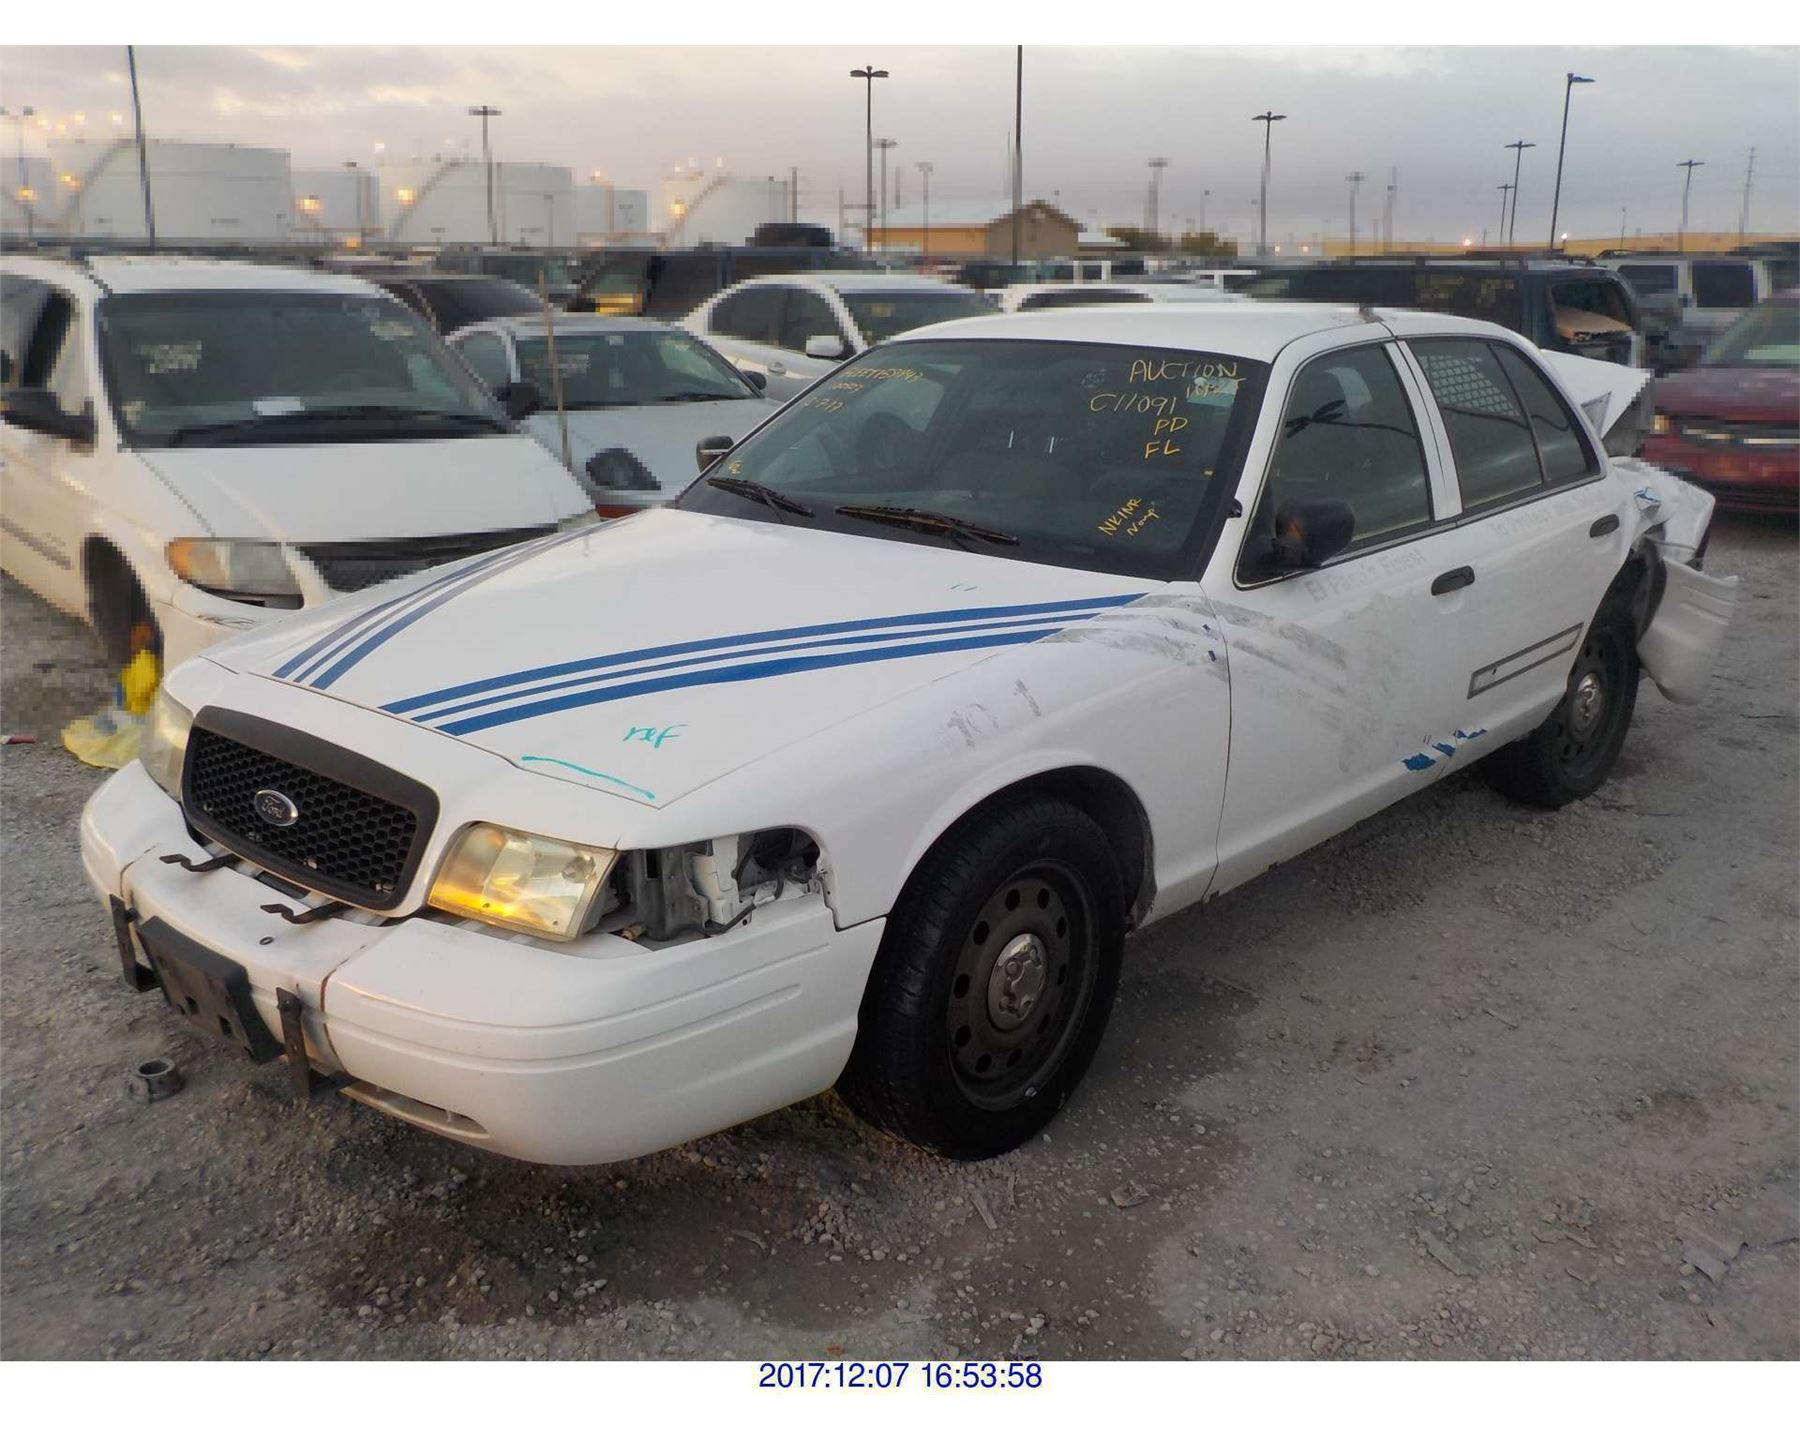 2011 - FORD CROWN VICTORIA // TX TITLE - Rod Robertson ...